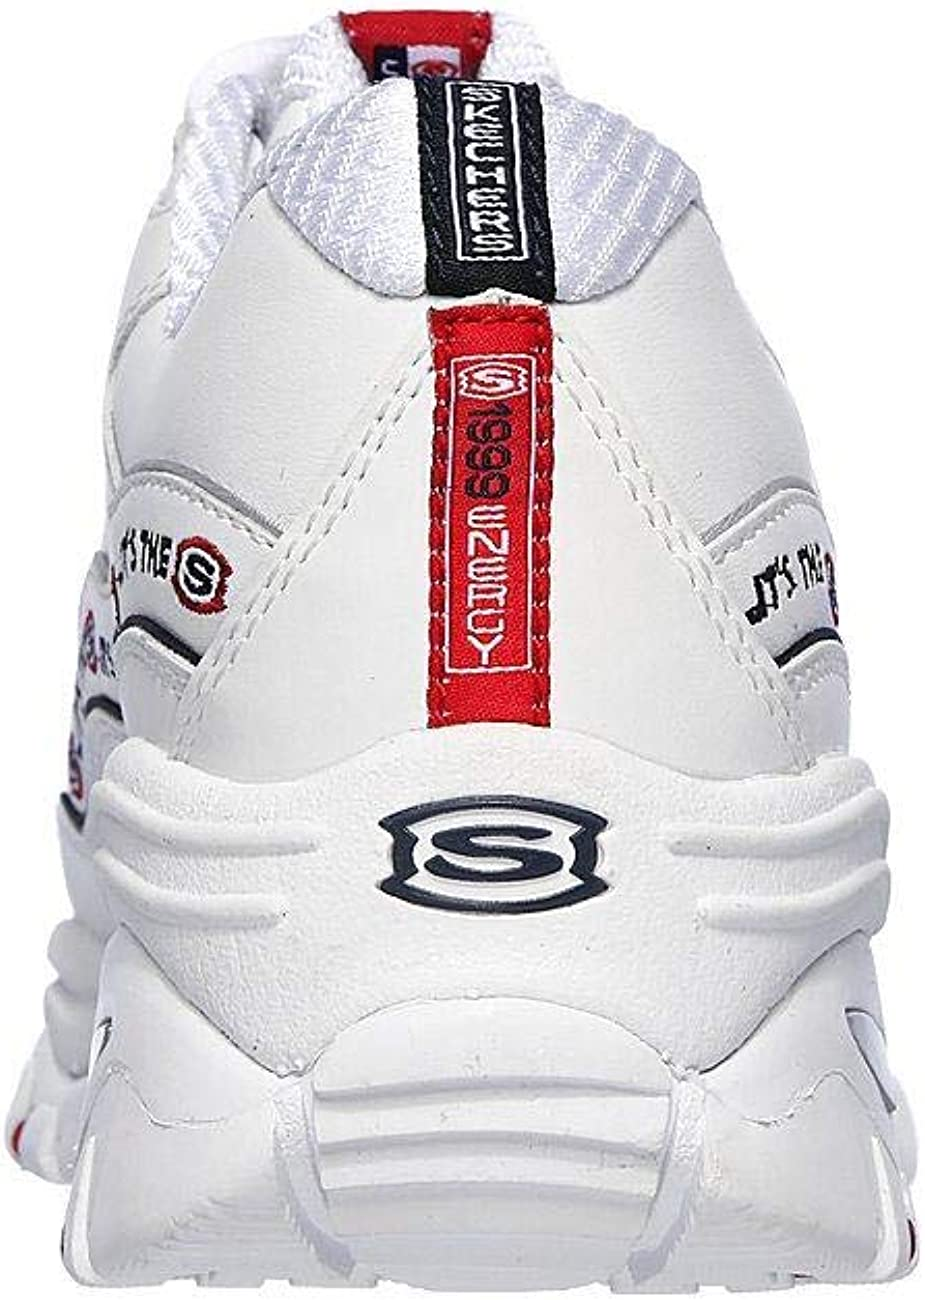 SKECHERS ENERGY DYNASTY LINXE WHITE NAVY RED